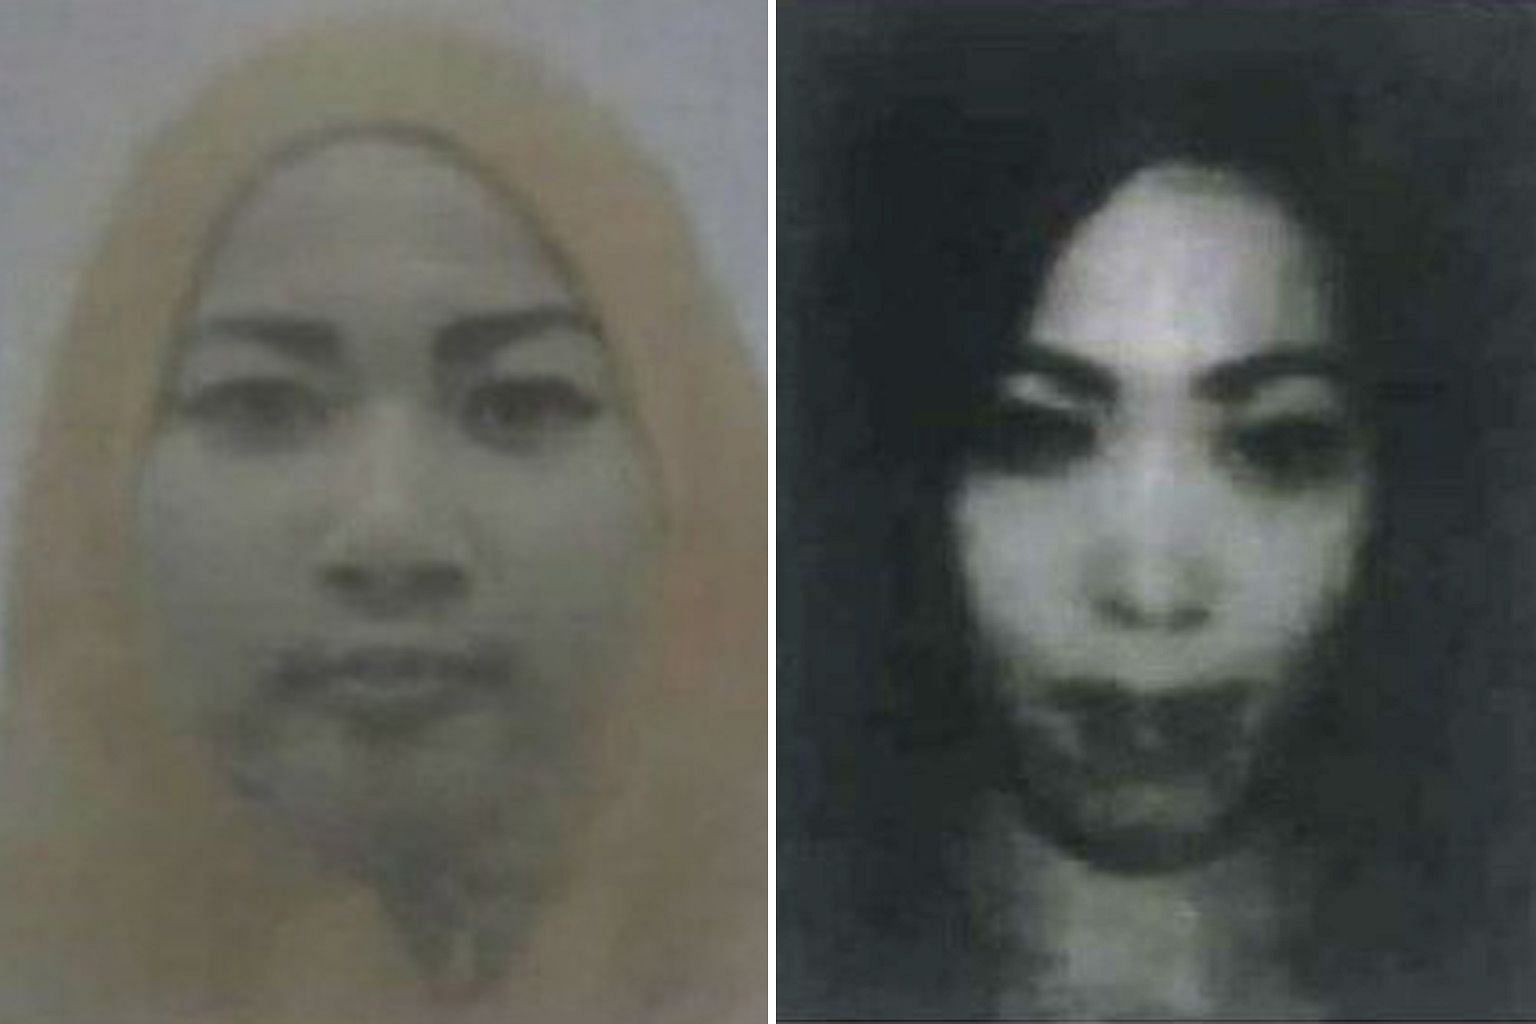 Ms Raisa Rinda Salma (left) and Ms Dessy Meyrisinta, both Indonesians, cannot be contacted, say police.